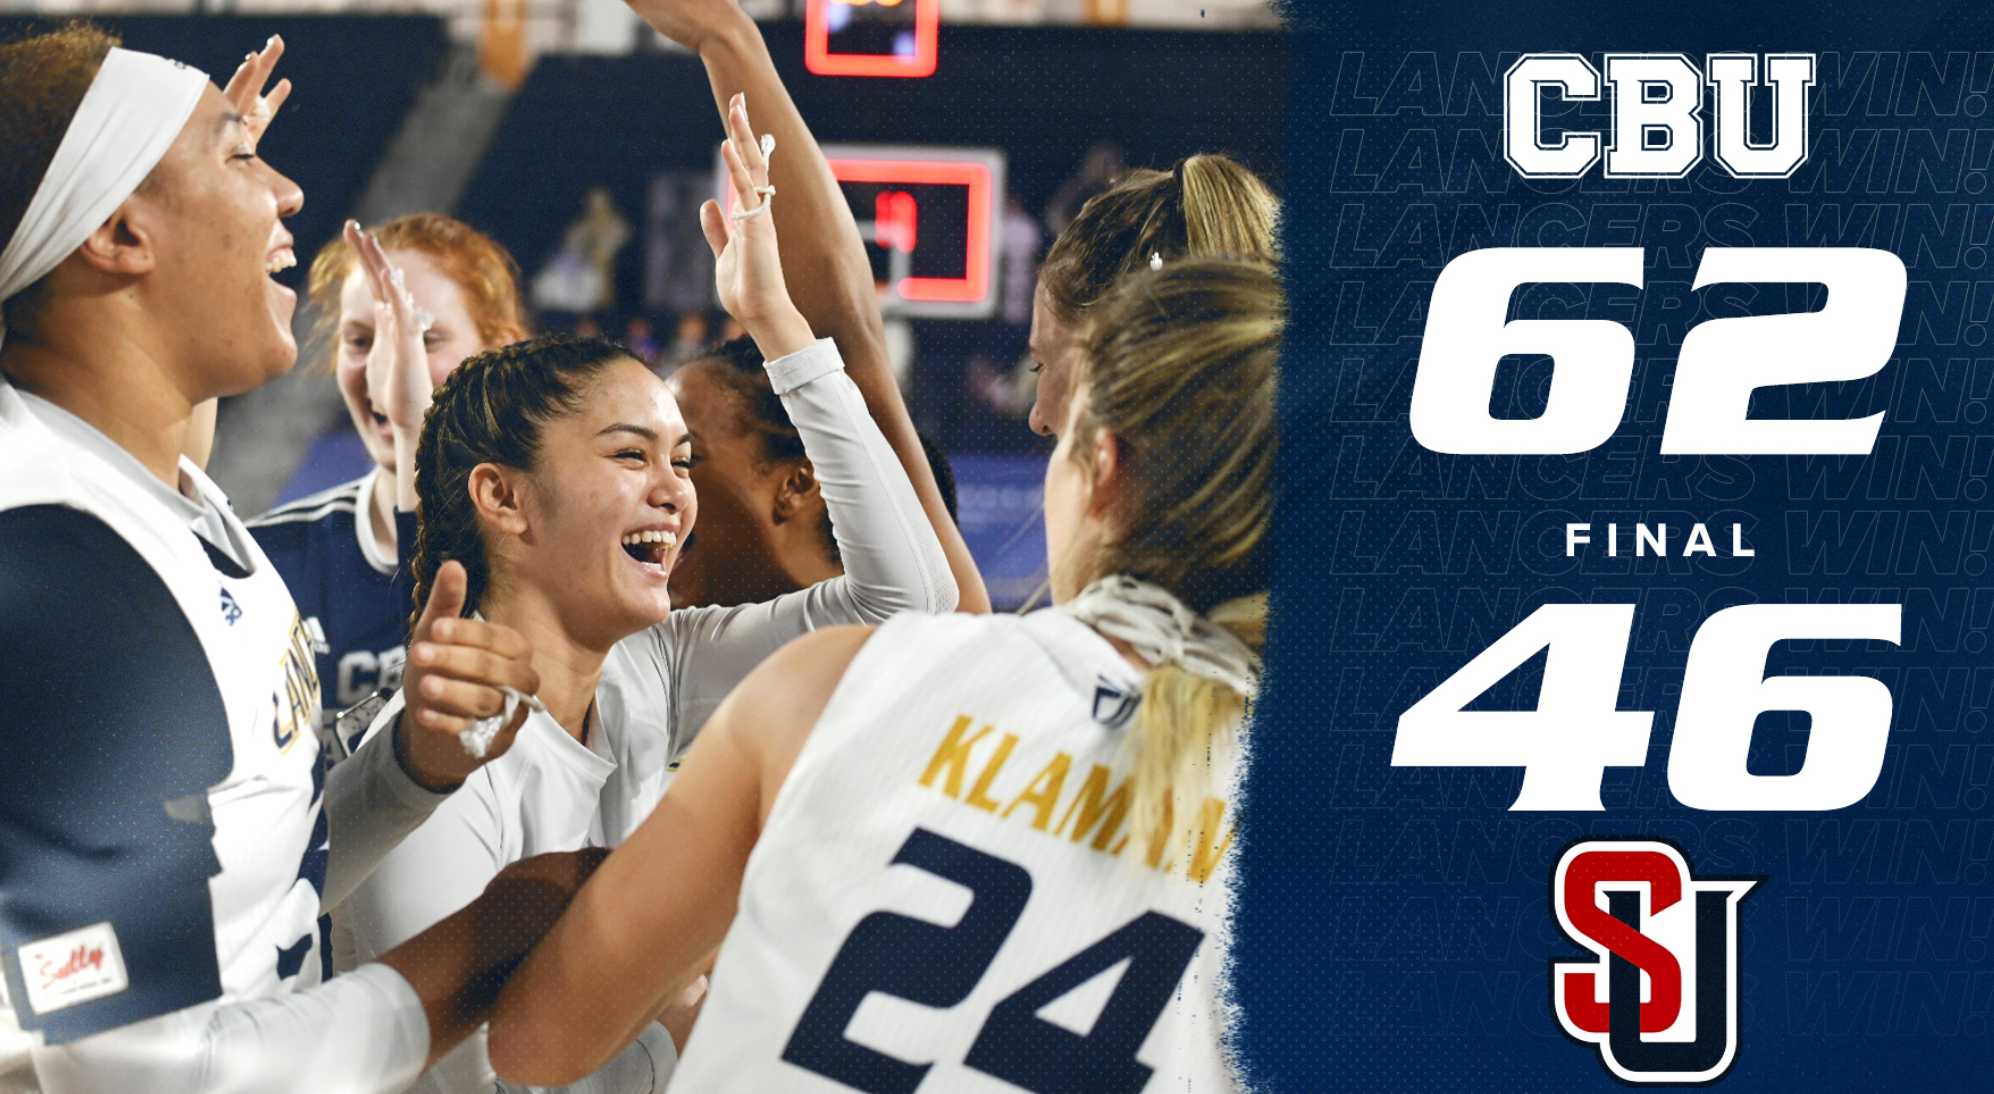 California's CBU Finishes With Perfect Record But Won't Make The NCAA Tournament (@CBULancers)